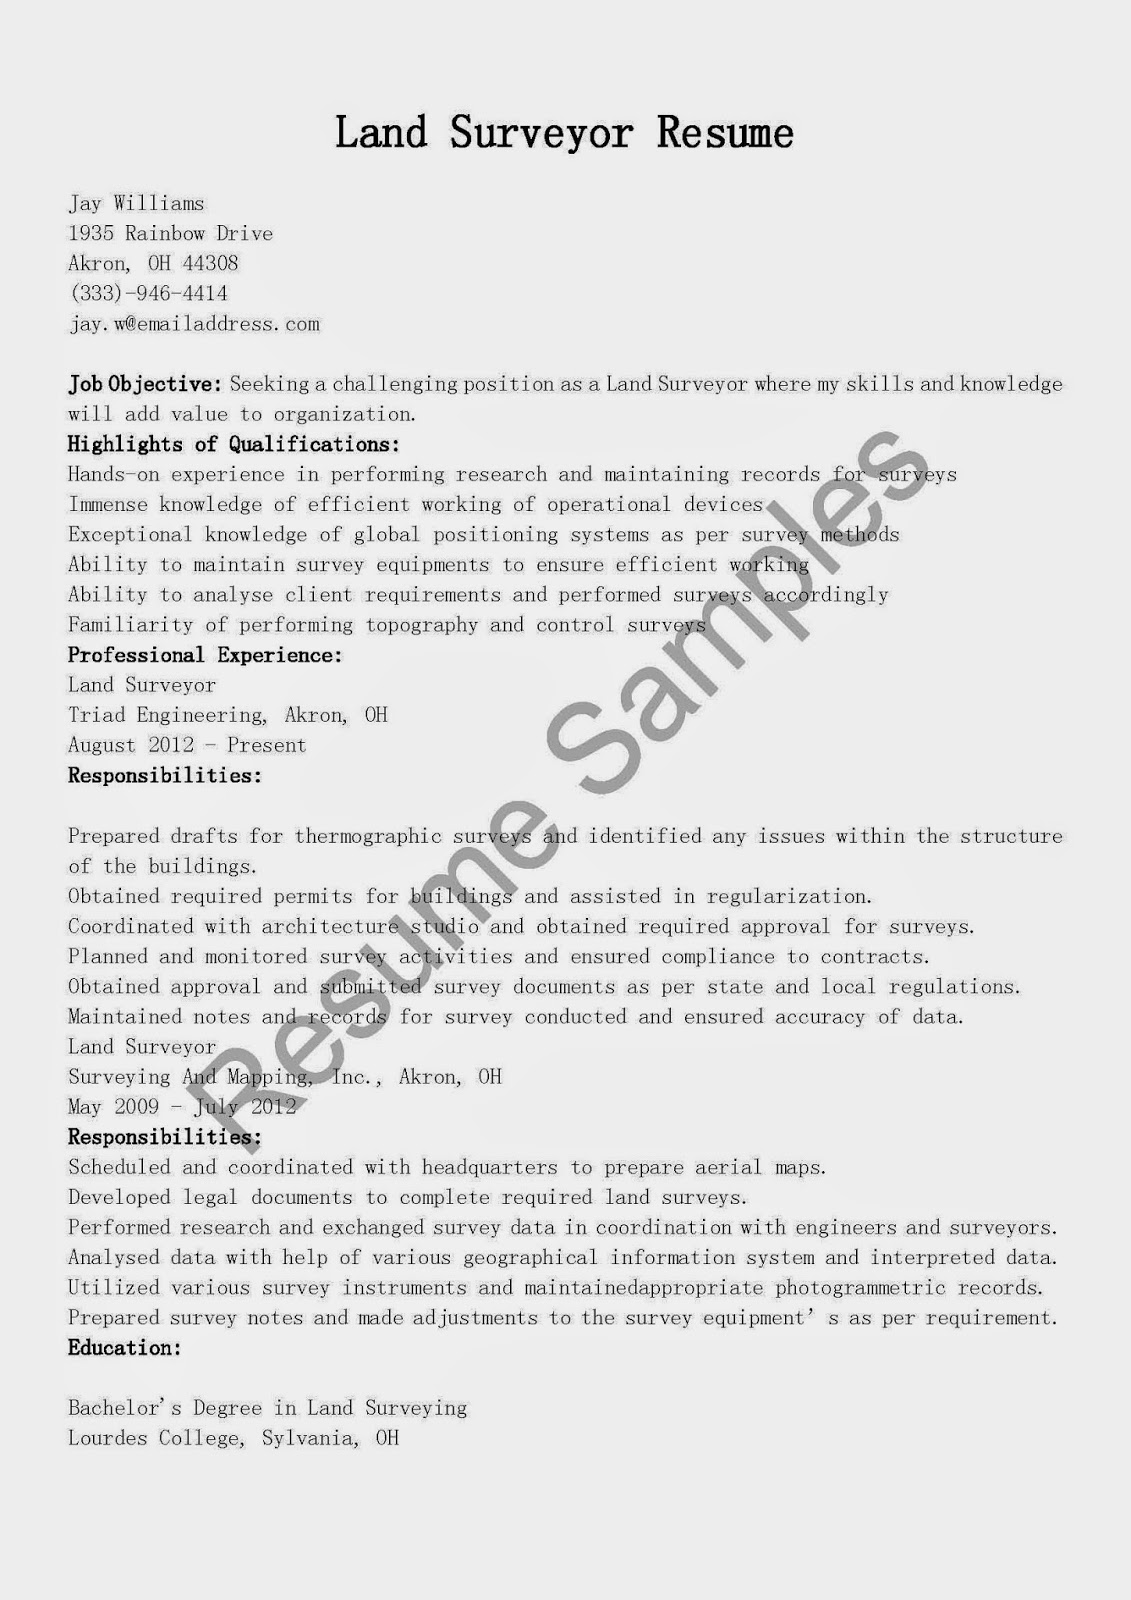 land surveyor resume sample cover letter for quantity surveyor job